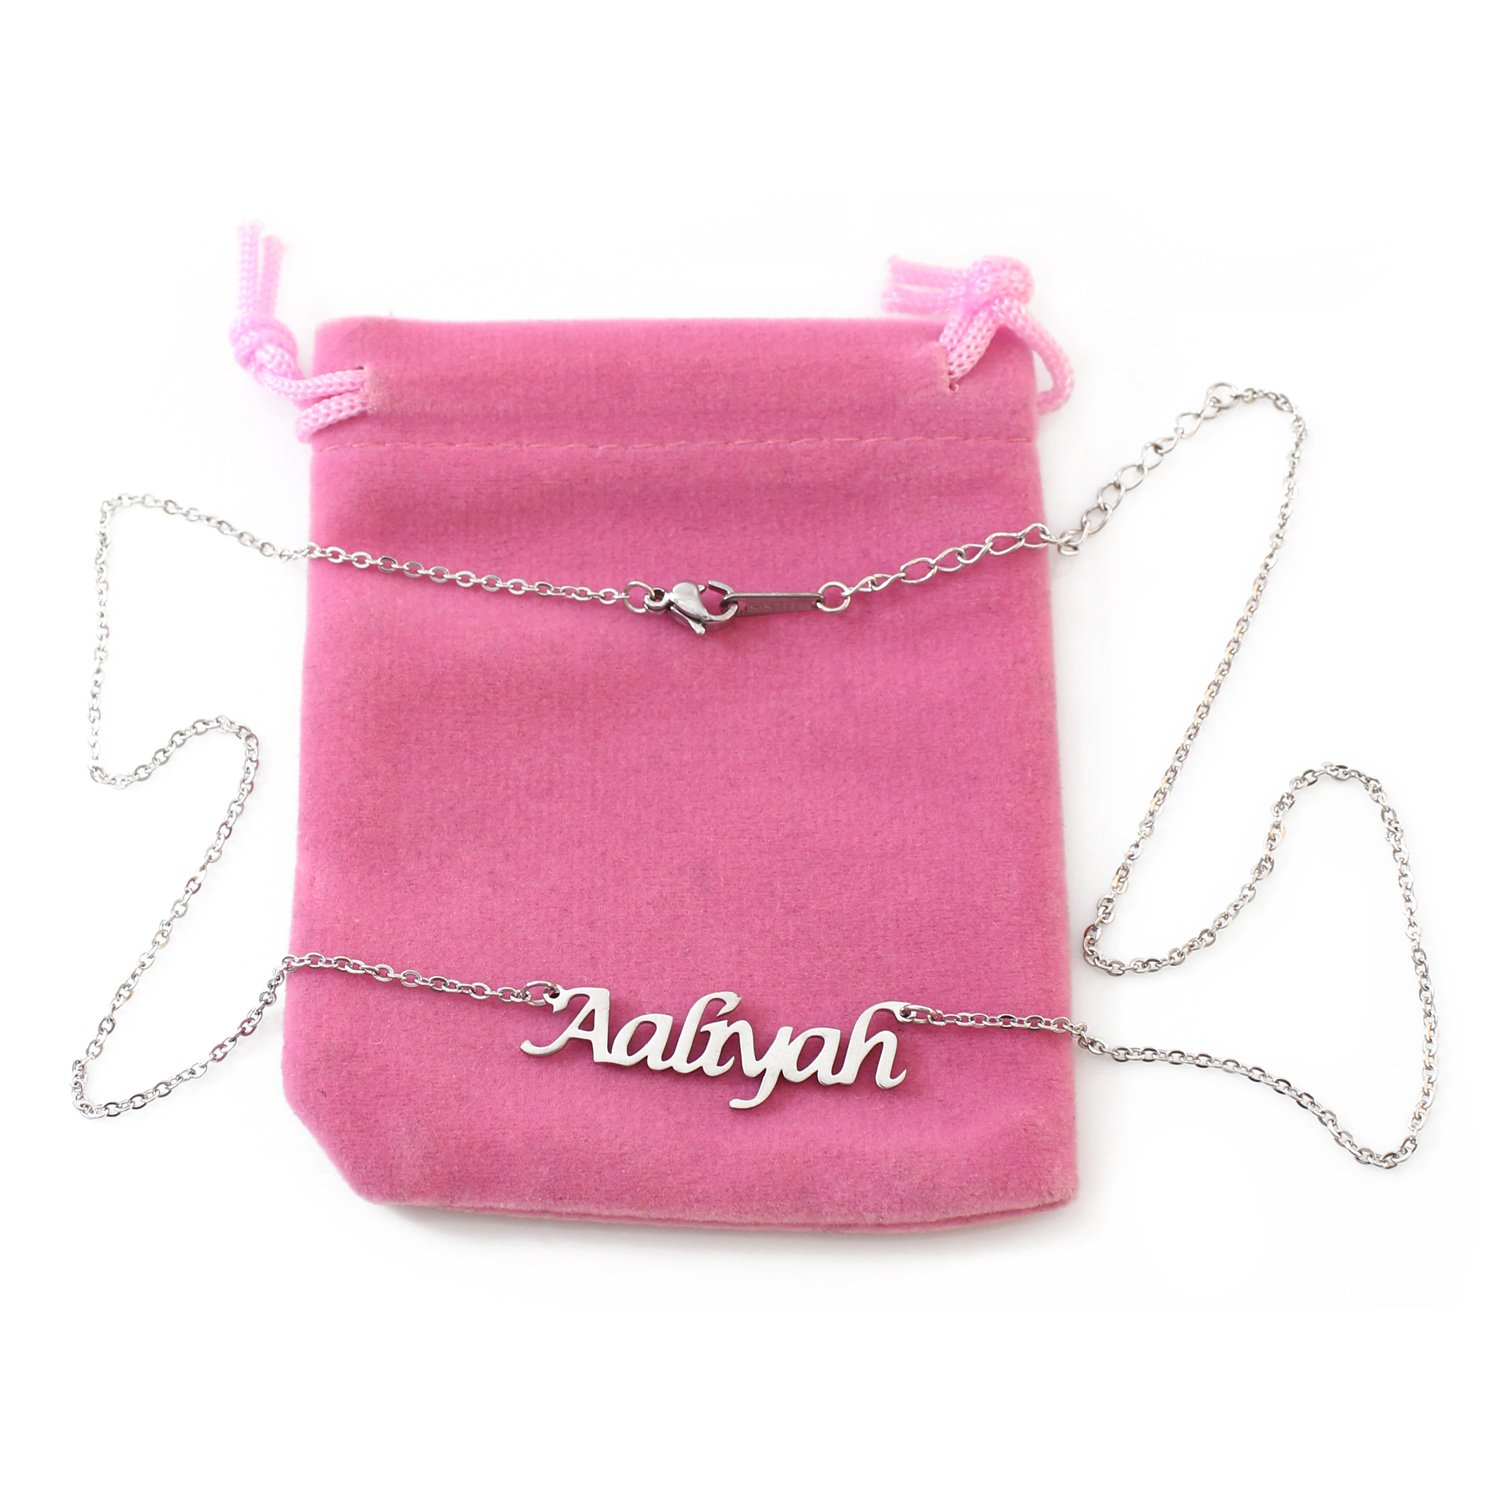 Zacria Aaliyah Silver Tone Name Necklace